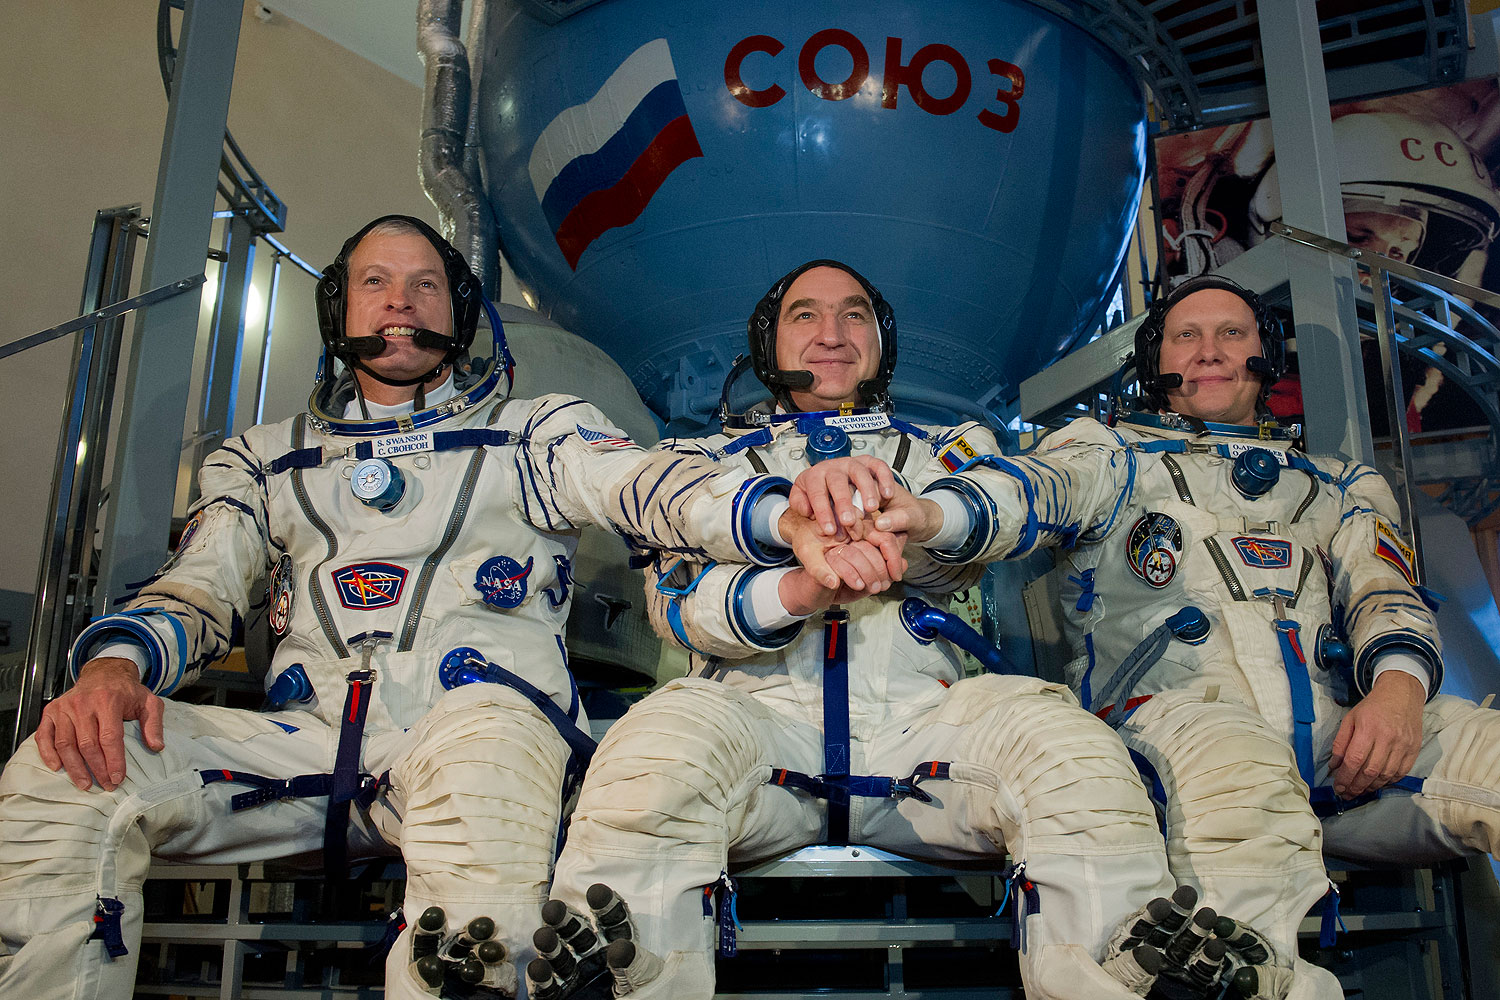 U.S. NASA astronaut Steven Swanson (L) joins hands with Russian cosmonauts, Alexander Skvortsov (C) and Oleg Artemyev (R), in front of a mock-up of a Soyuz TMA spacecraft at the Gagarin Cosmonauts' Training Centre in Star City centre outside Moscow, on March 5, 2014